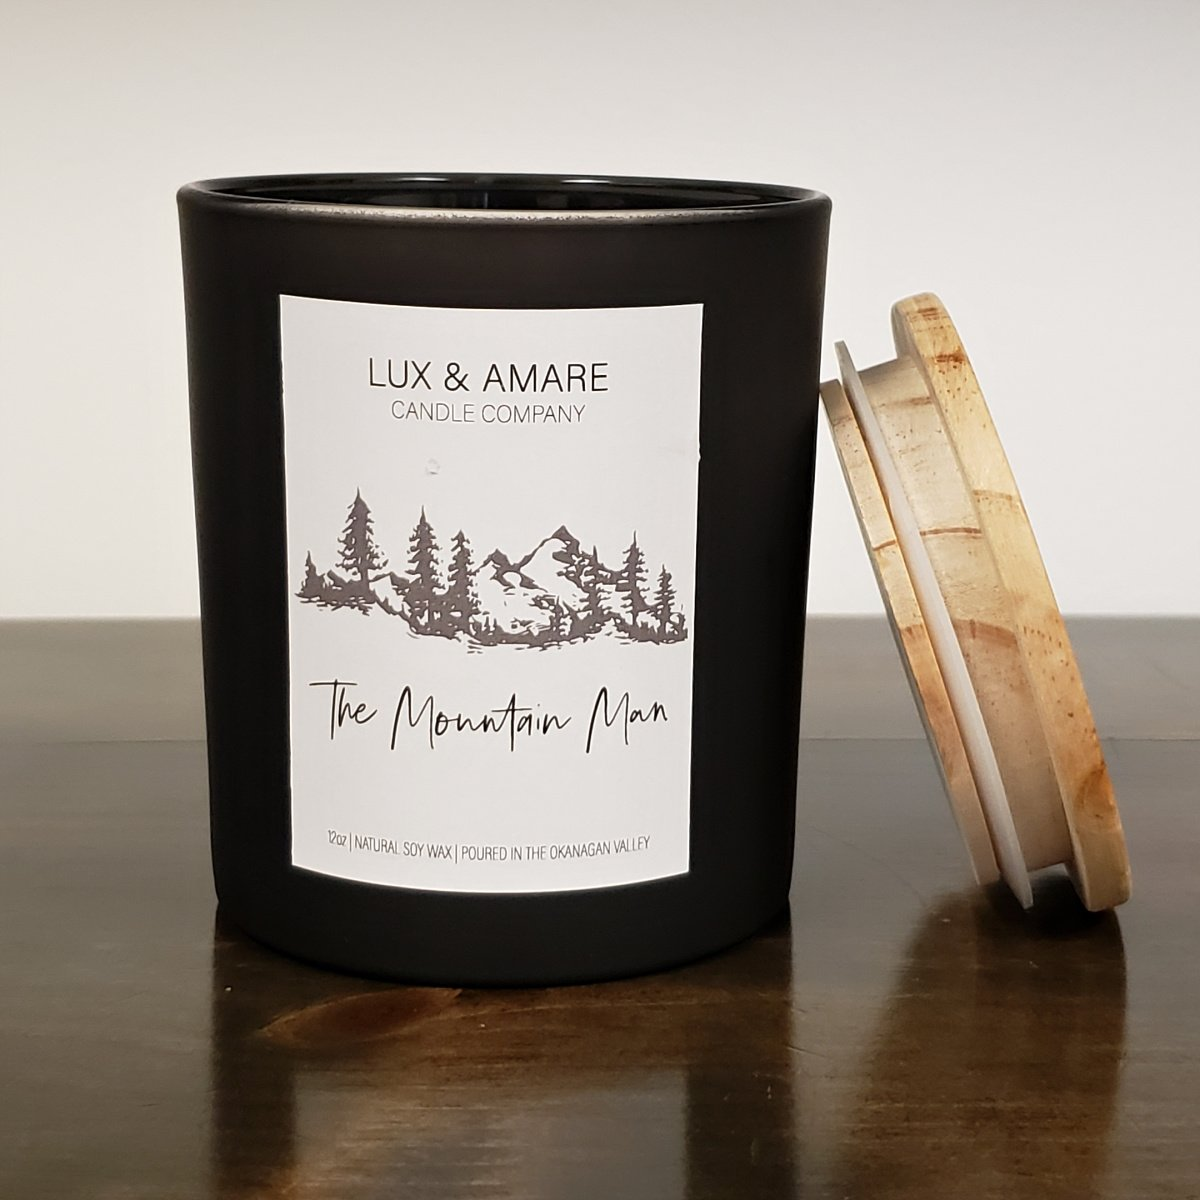 The Mountain Man Lux & Amare Candle Company